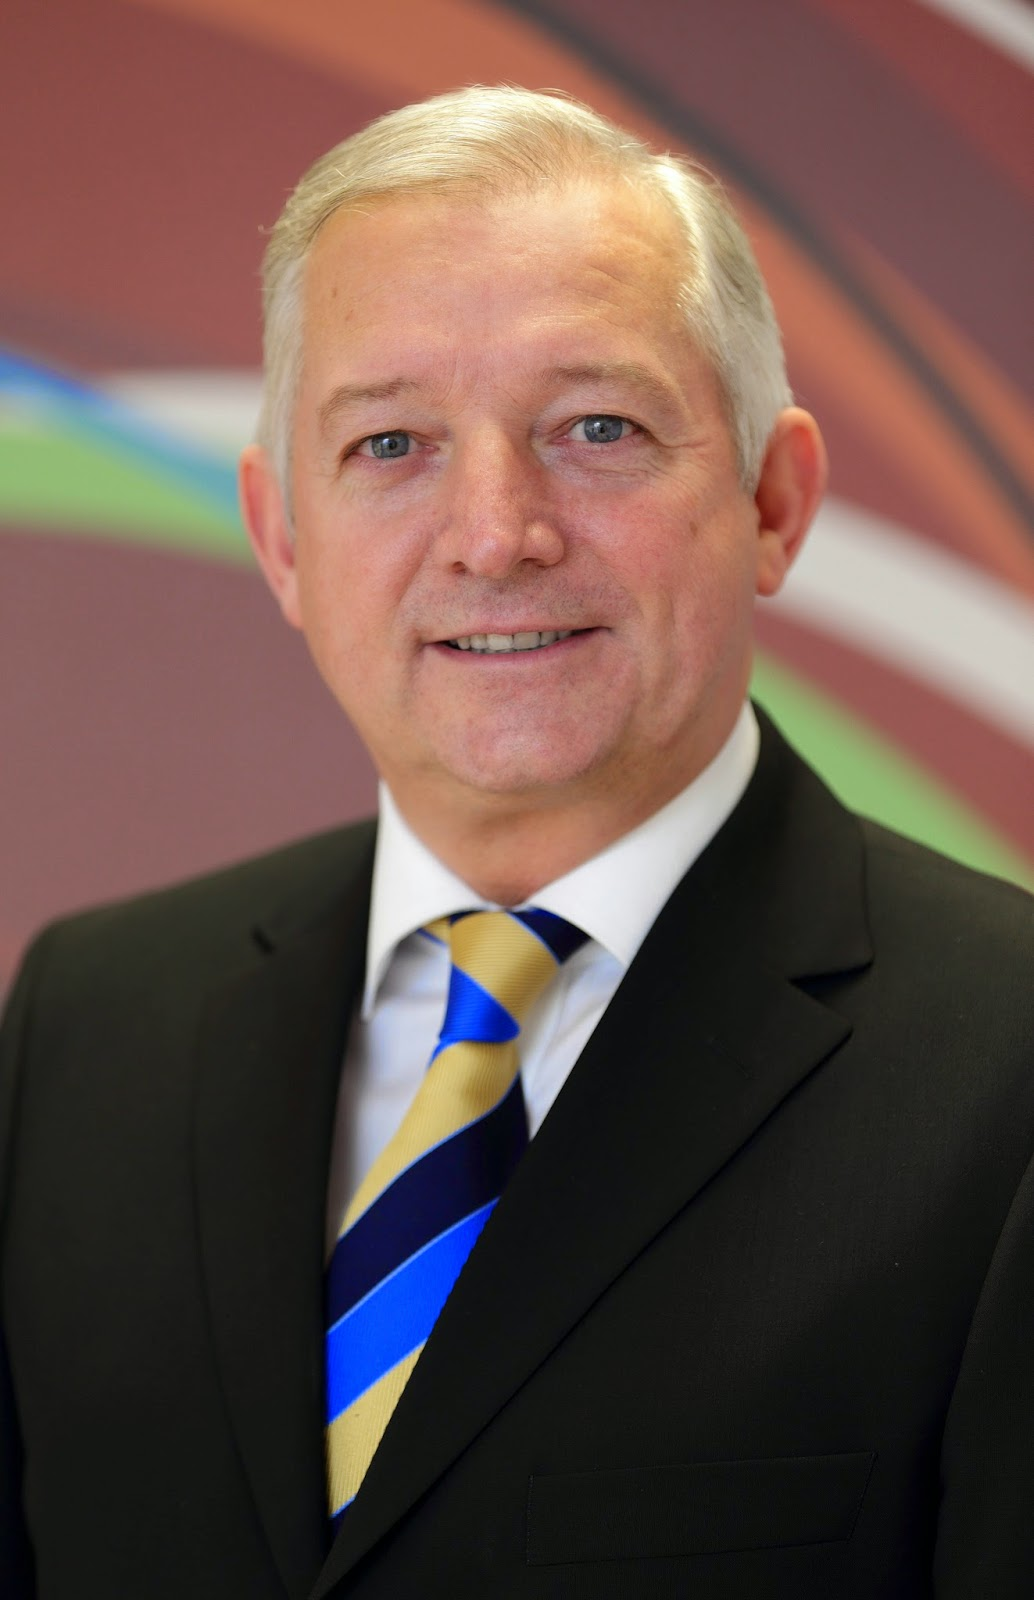 Ricoh Ireland appoints GM